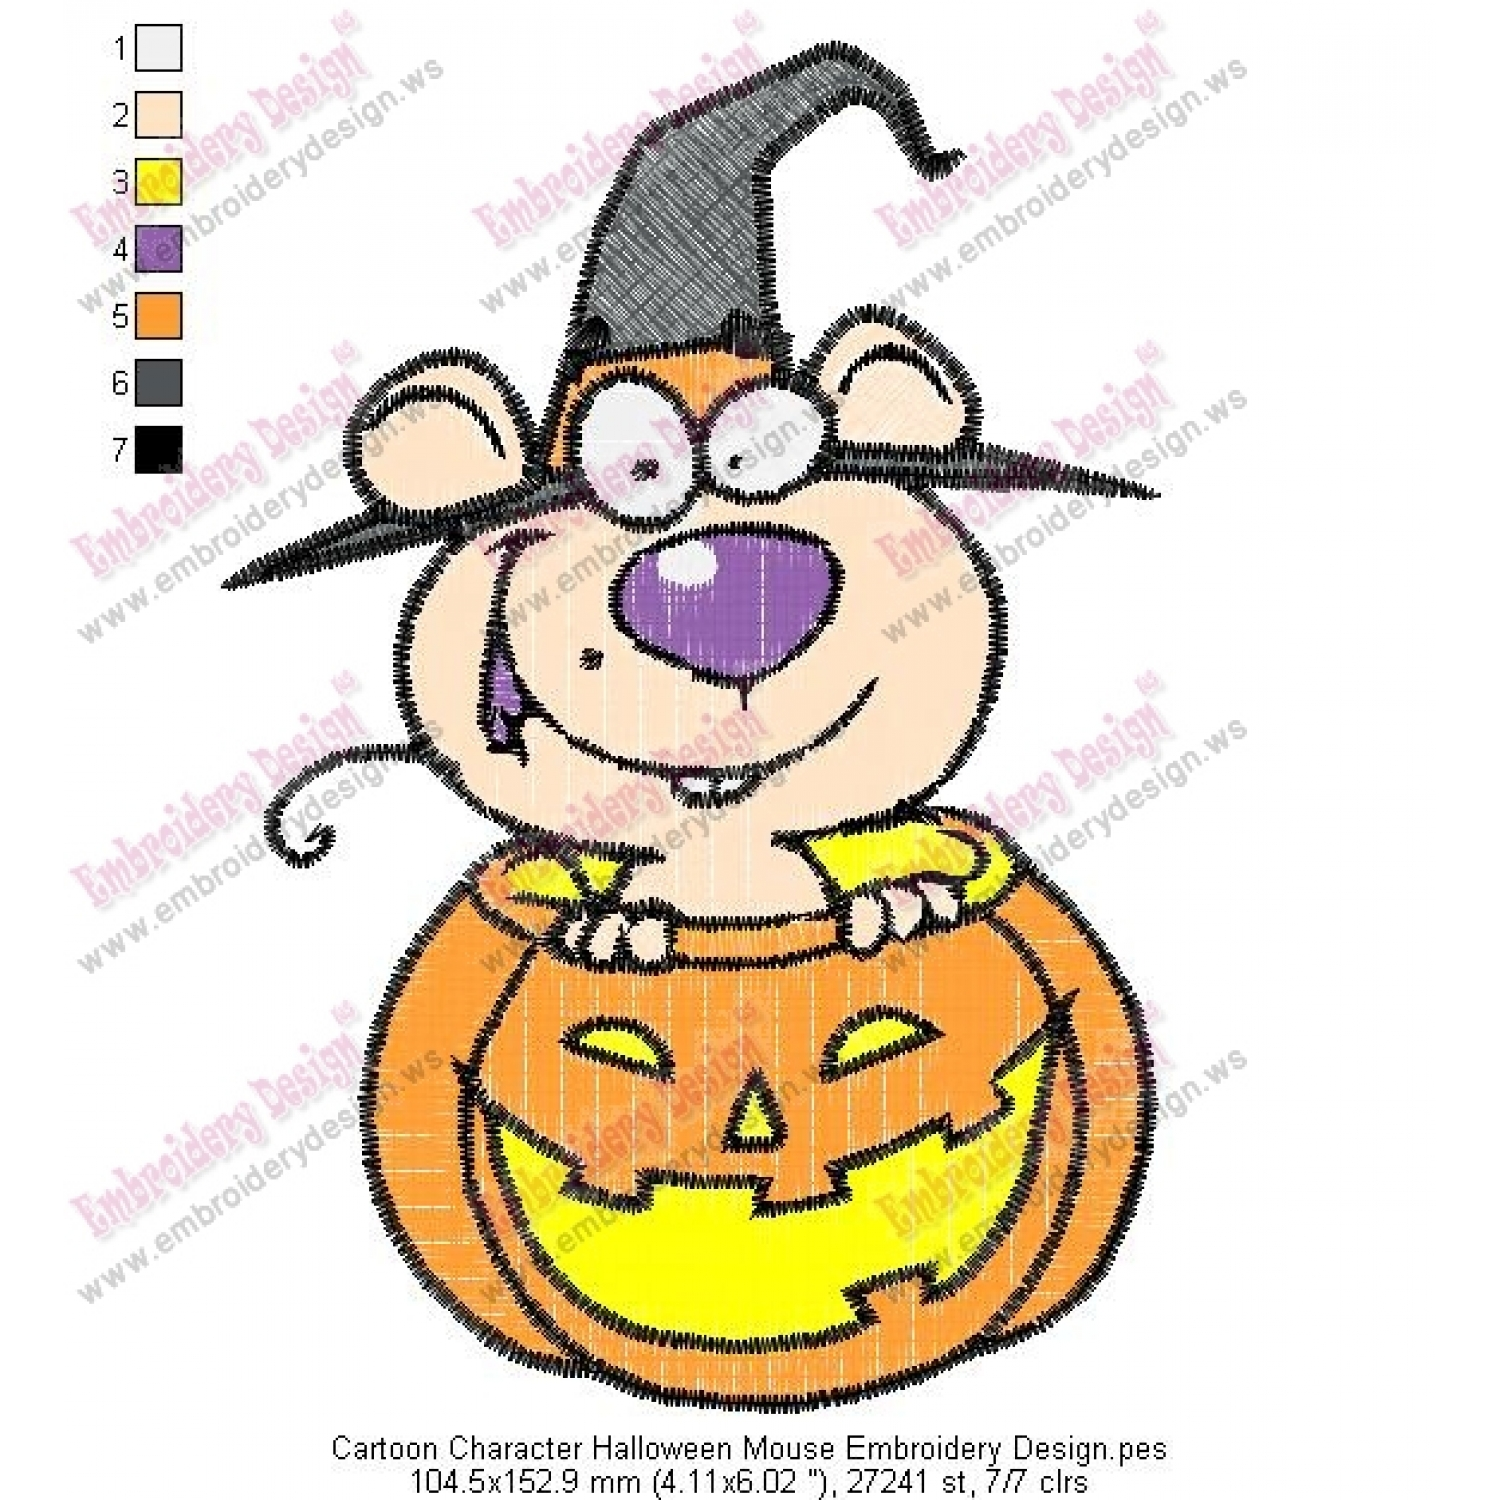 Cartoon Character Halloween Mouse Embroidery Design